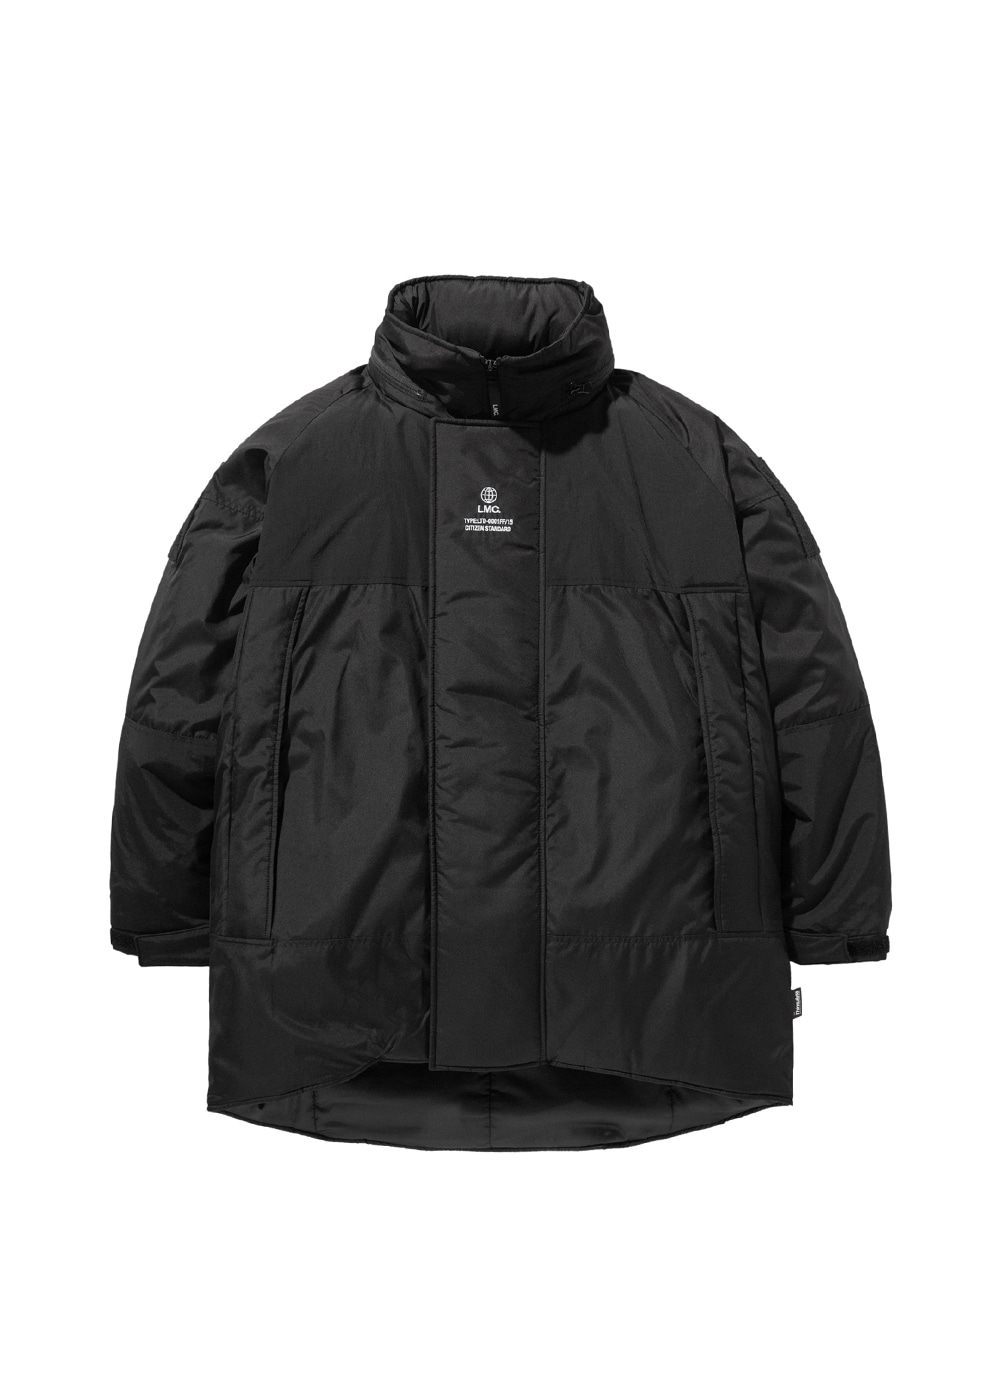 LMC GLOBE MONSTER THINSULATE PARKA black